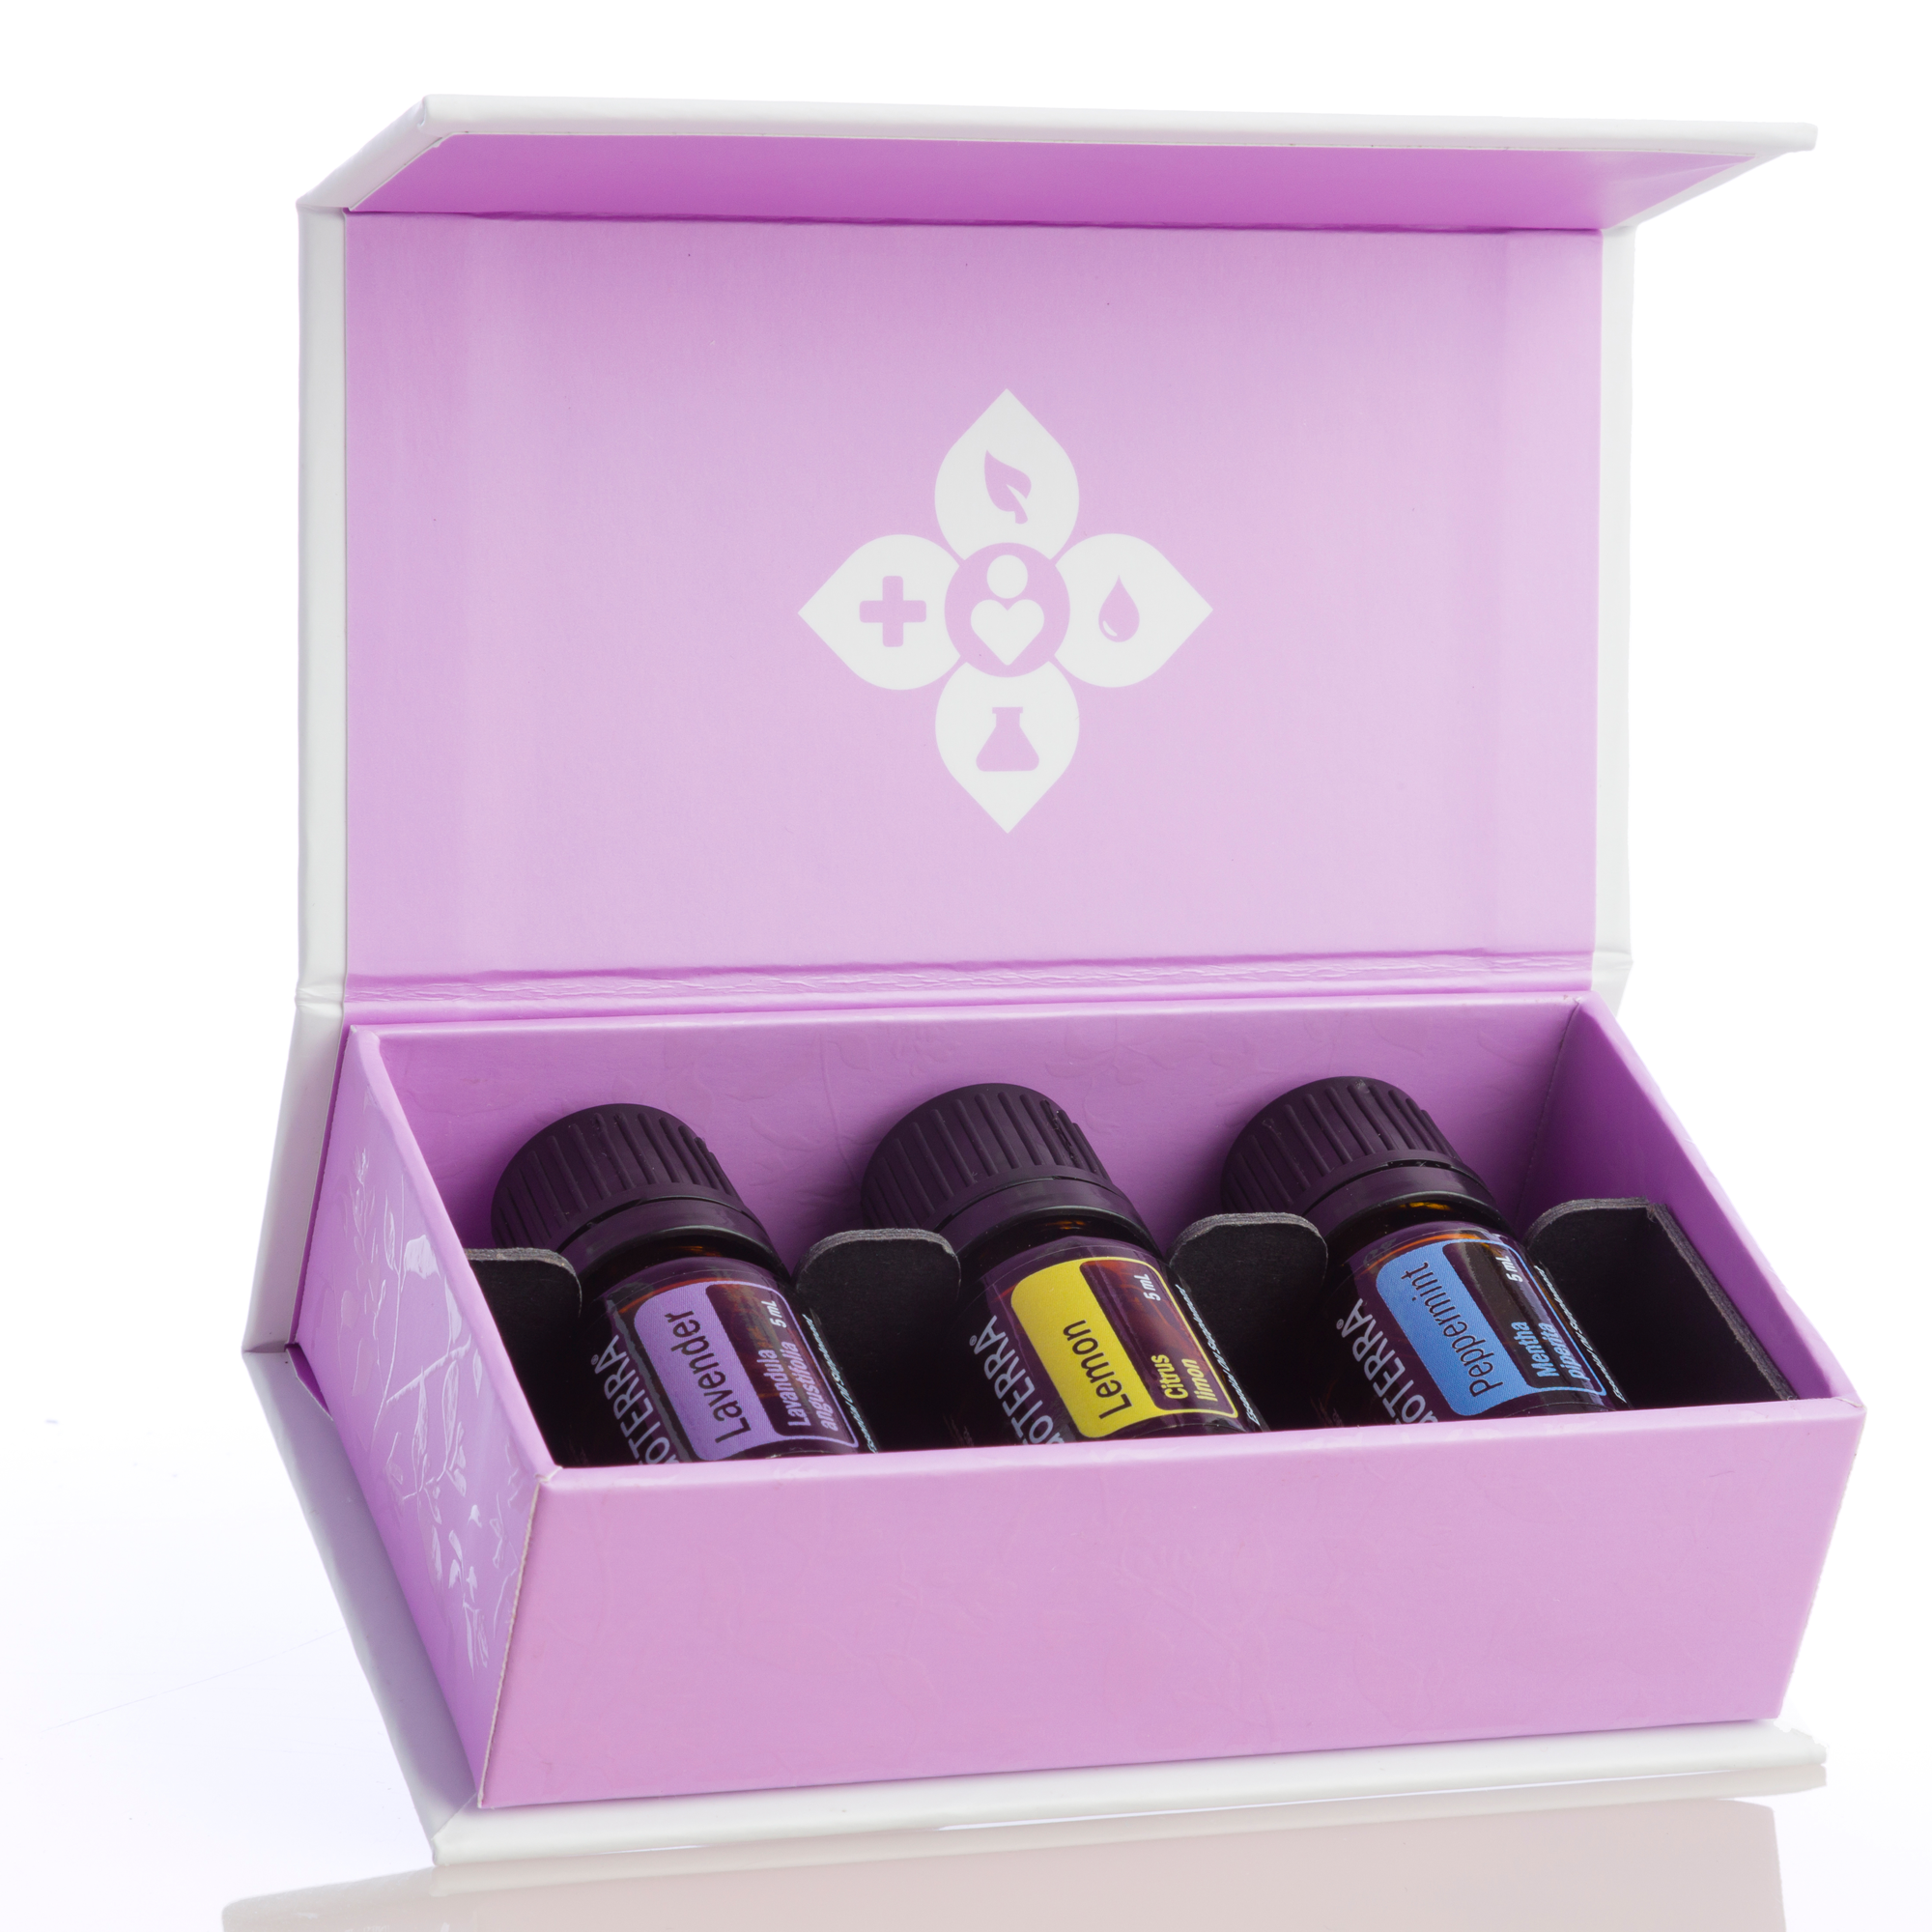 doTERRA-Introductory-Kit-square.png